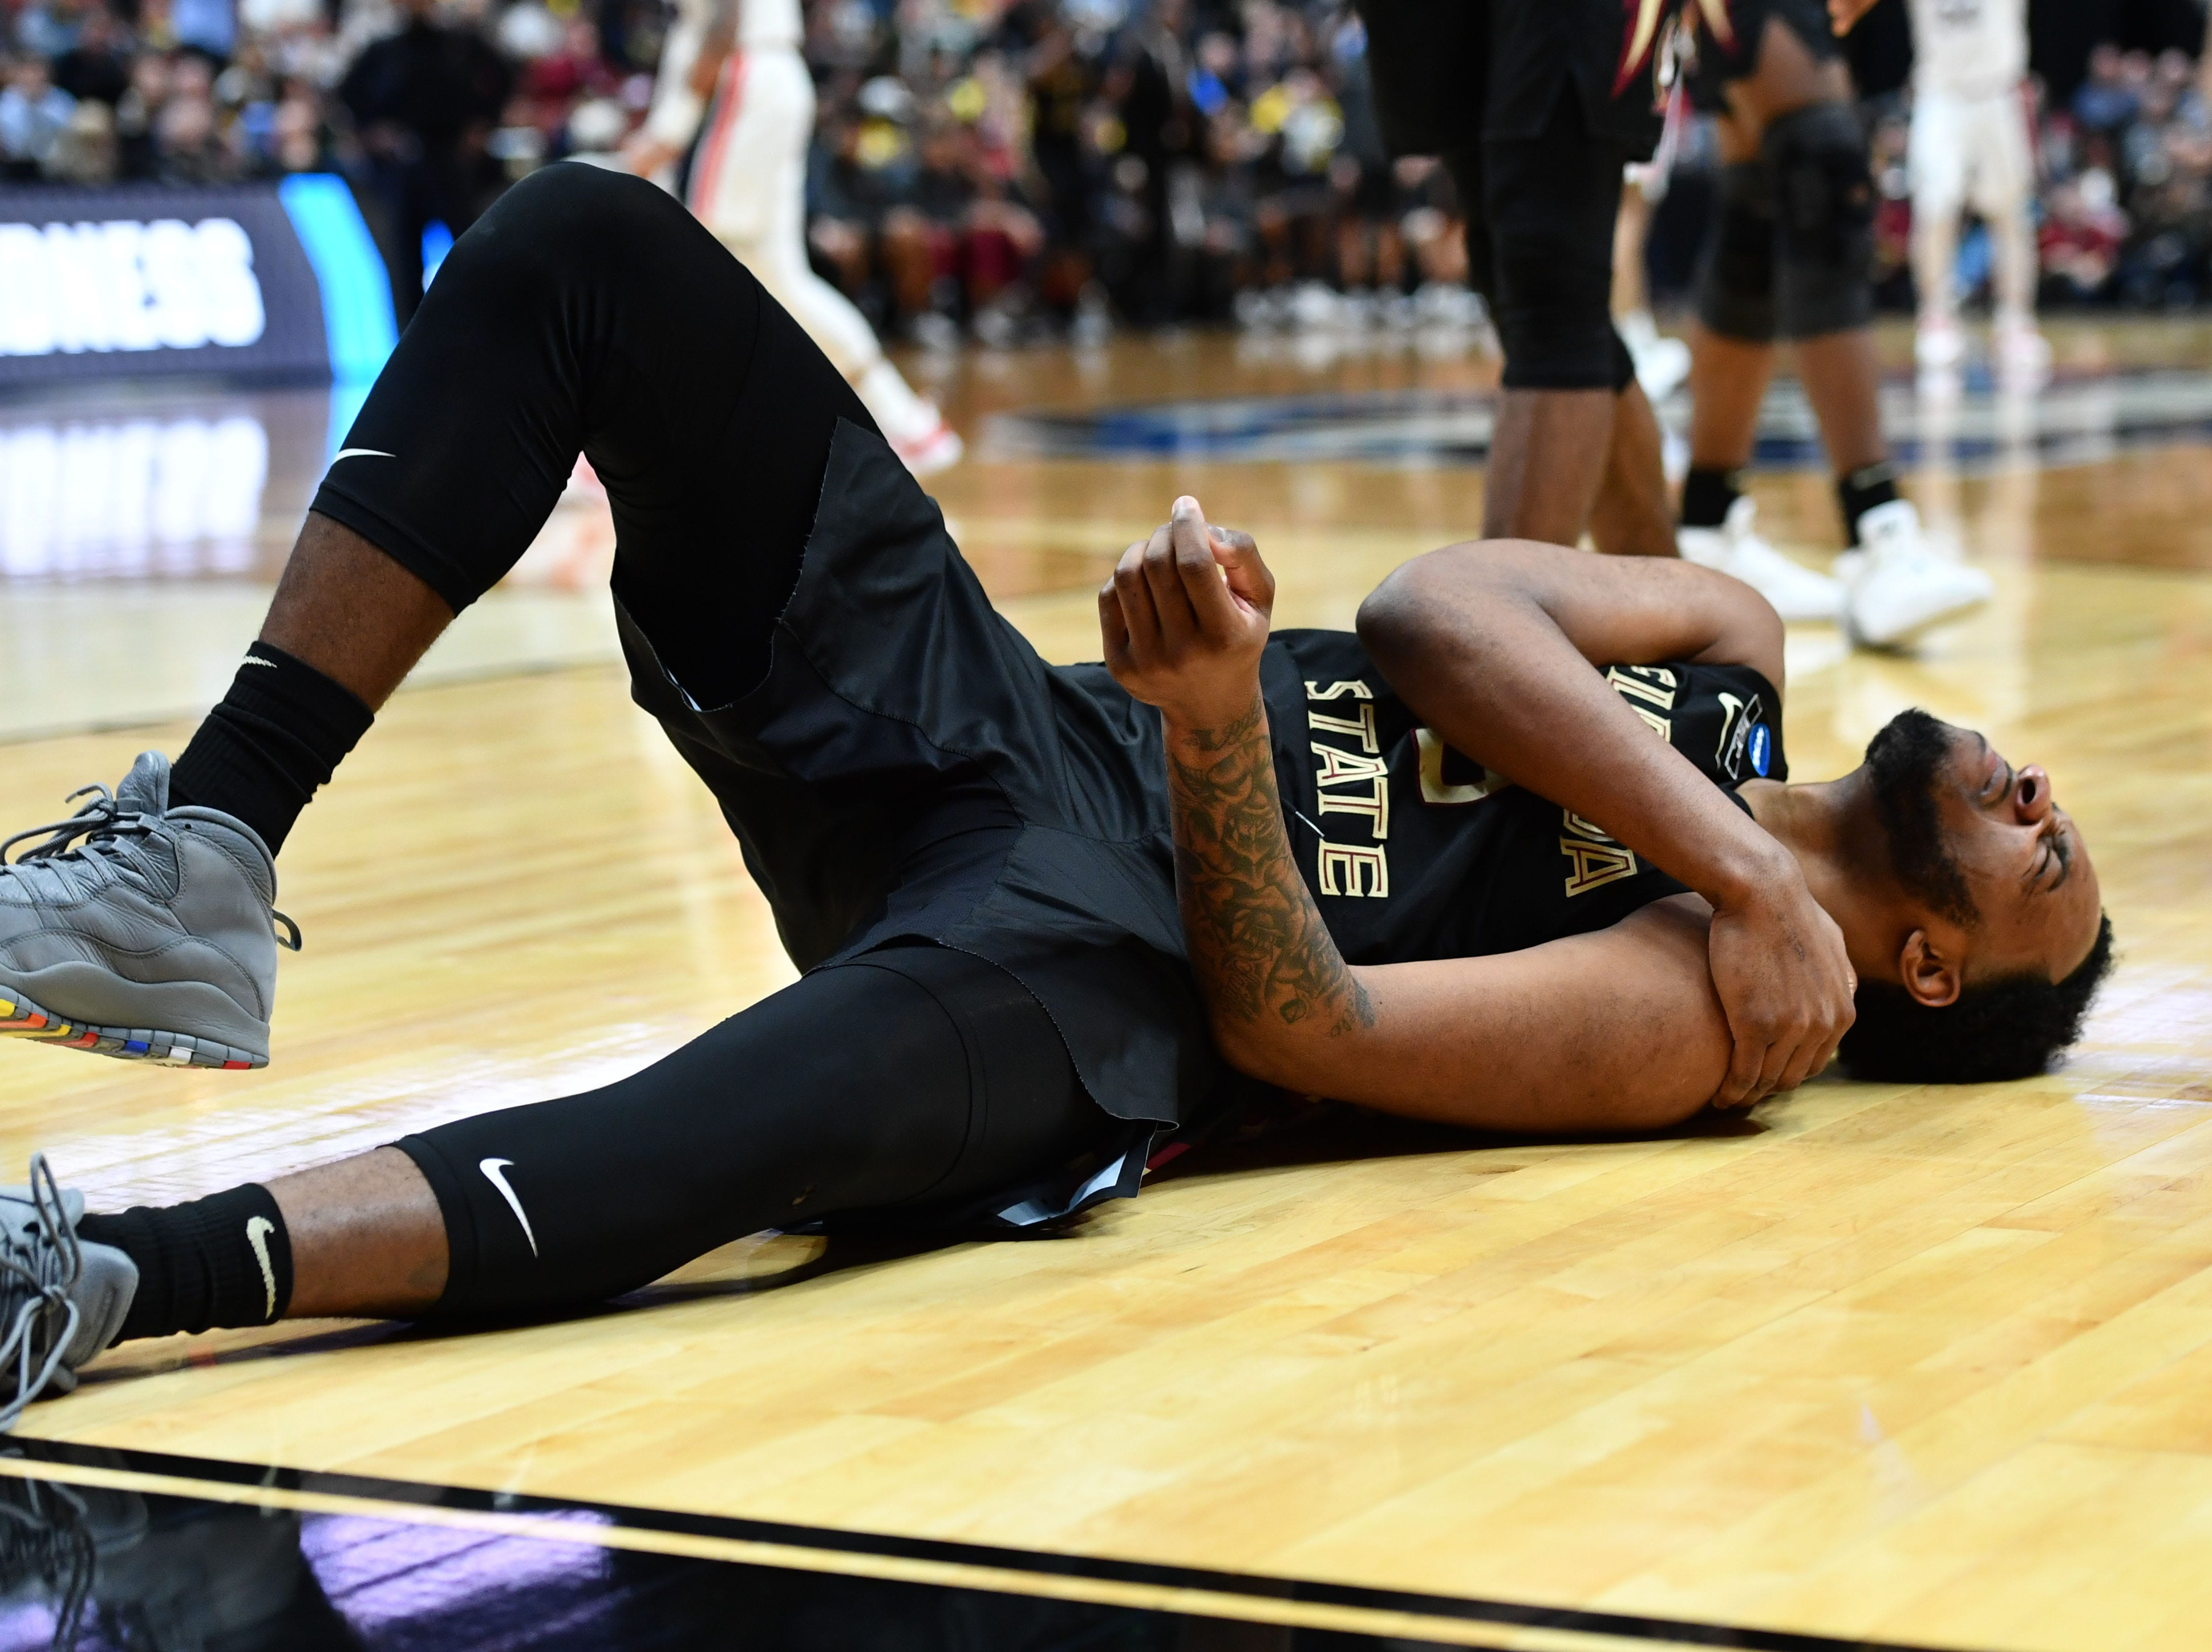 March 28, 2019; Anaheim, CA, USA; Florida State Seminoles guard PJ Savoy (5) reacts after falling against the Gonzaga Bulldogs during the second half in the semifinals of the west regional of the 2019 NCAA Tournament at Honda Center. Mandatory Credit: Robert Hanashiro-USA TODAY Sports